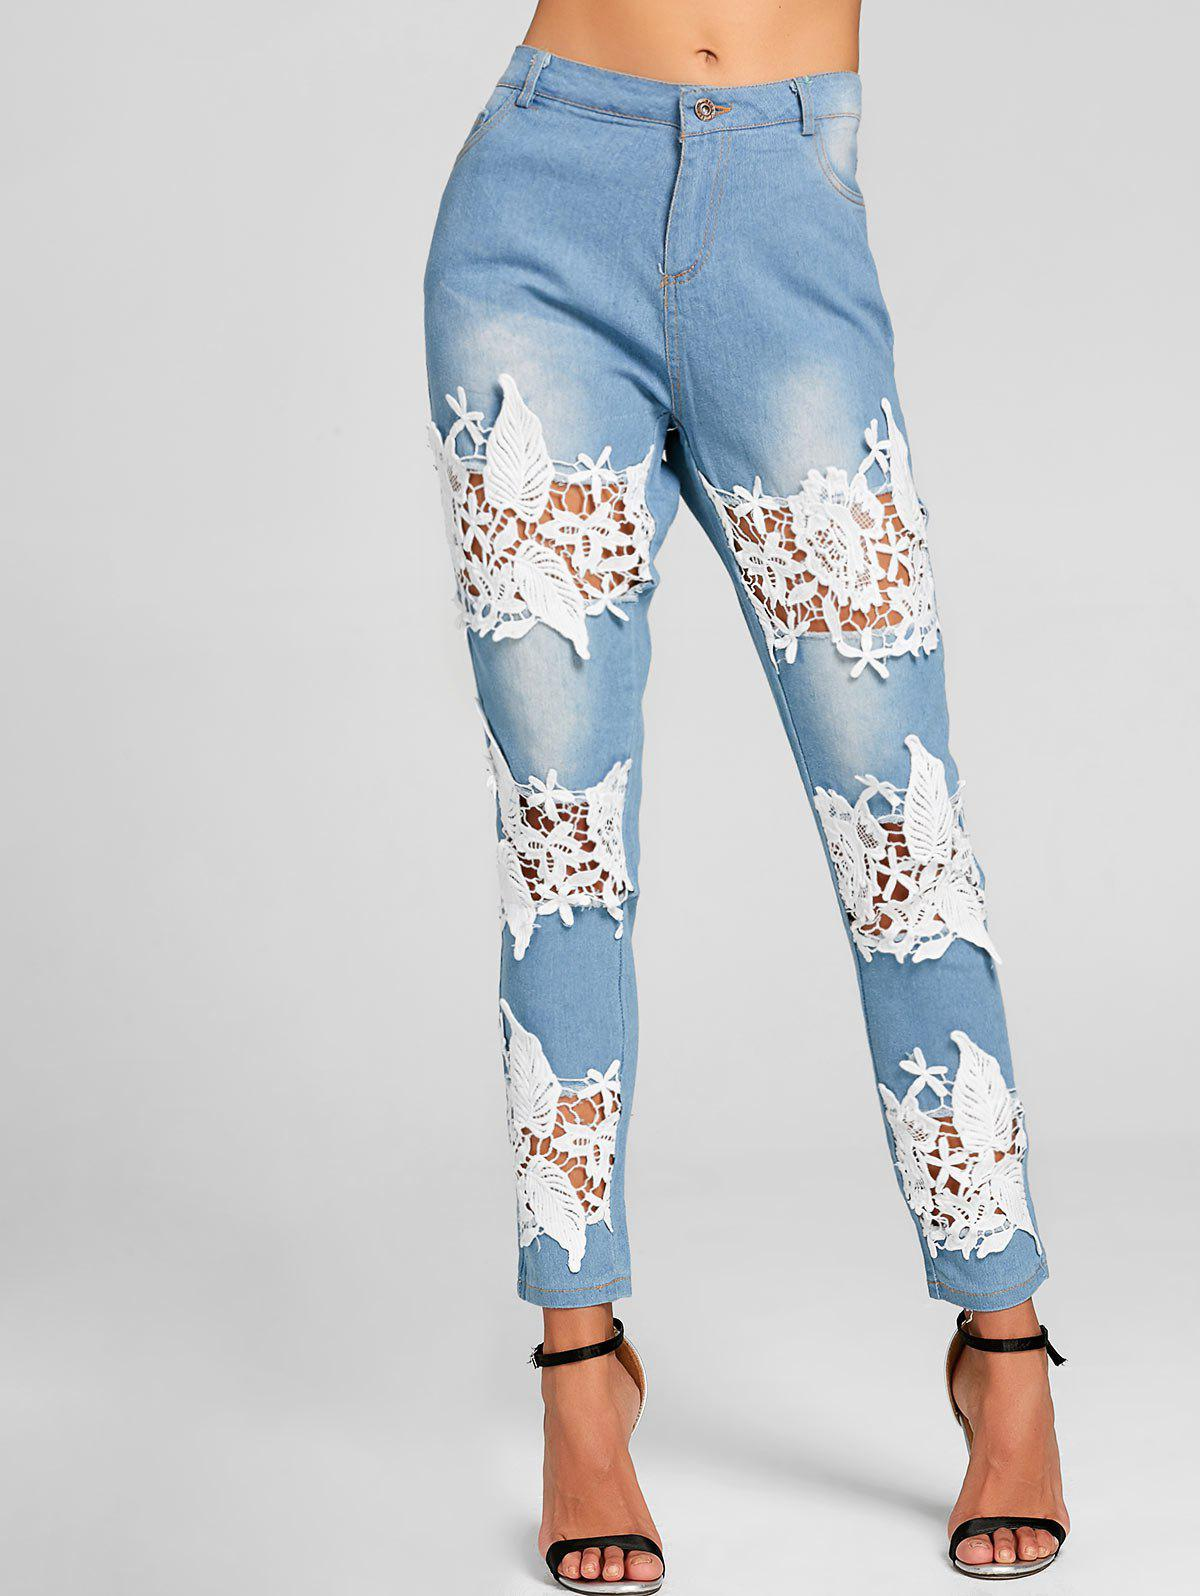 Lace Insert Hole Skinny Destroyed Jeans - CLOUDY L